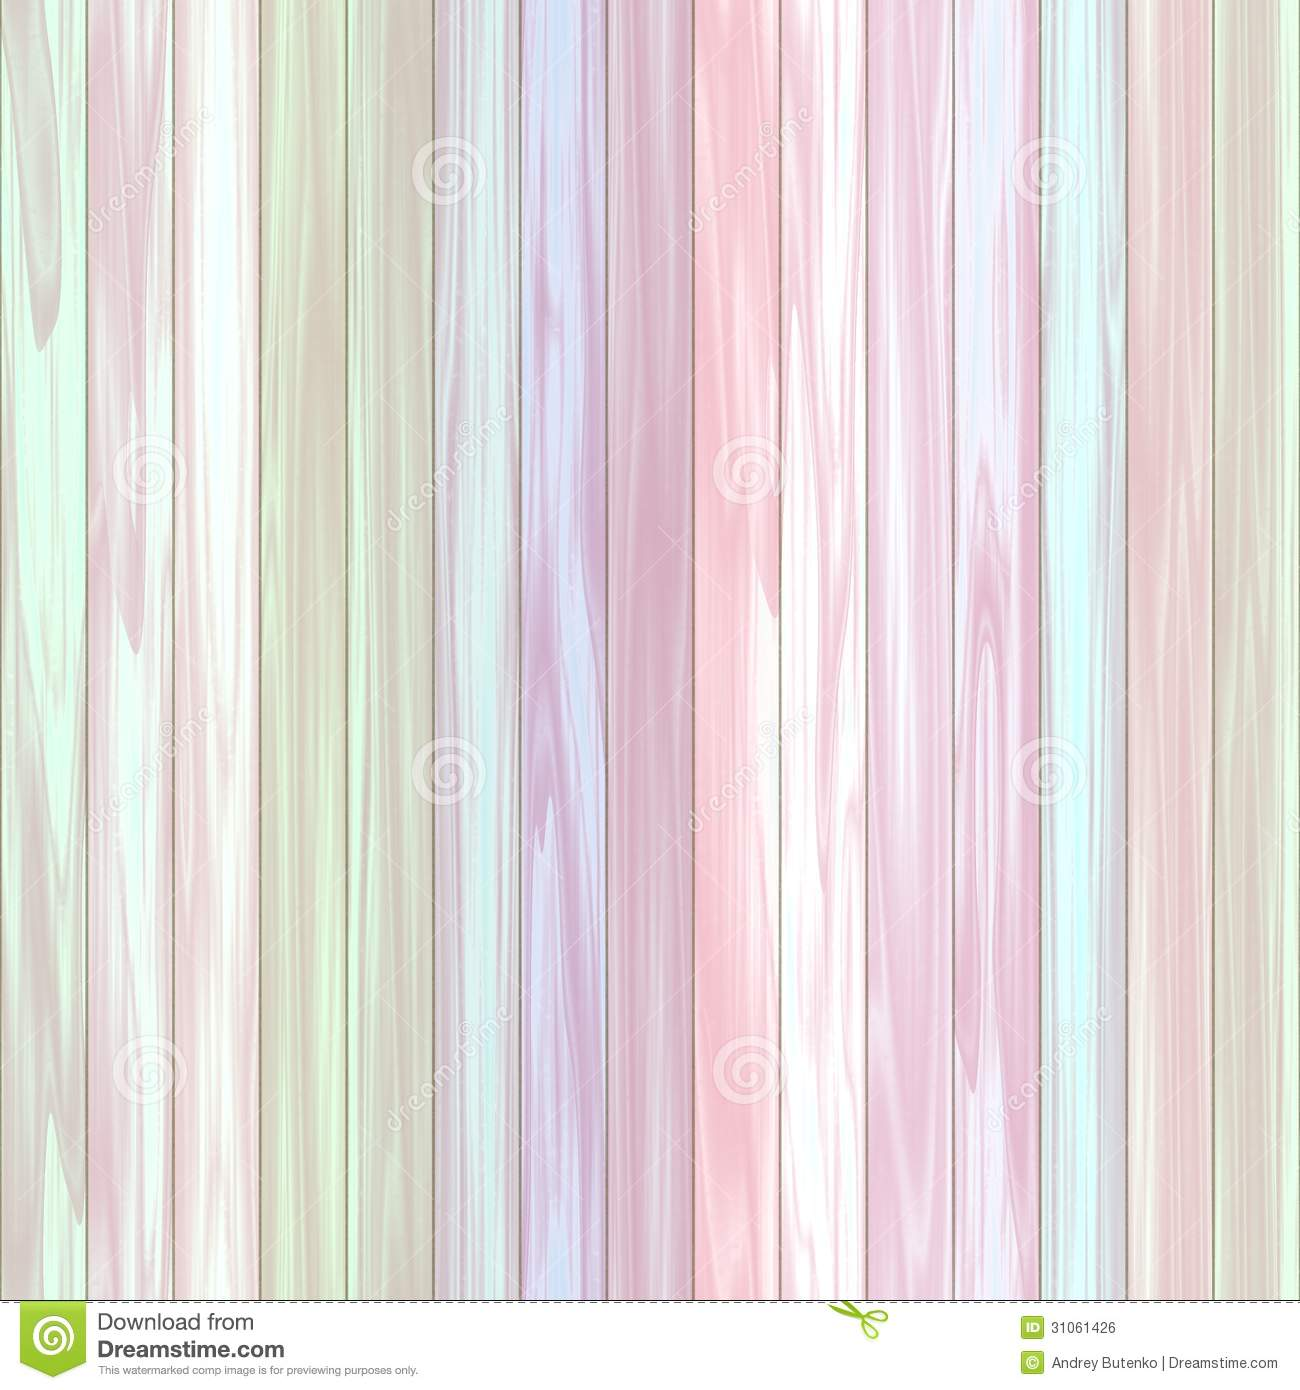 Painted Wood Plank Royalty Free Stock Image - Image: 31061426